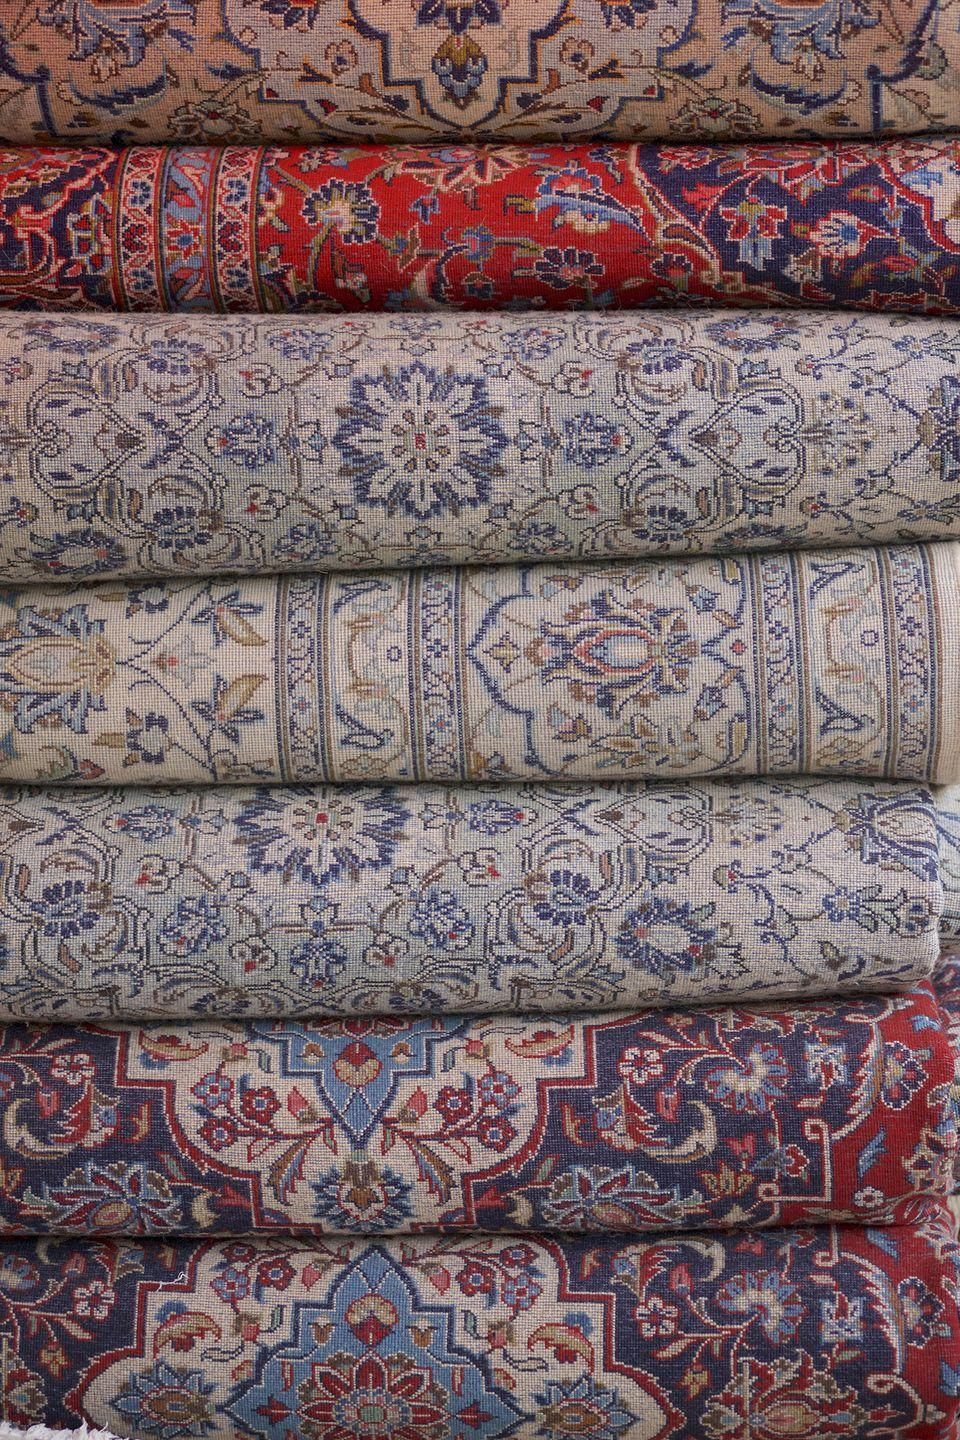 <p>Preowned rugs could contain years of stains, allergens, mold, and mildew. Buy a new one and your allergies will thank you. </p>